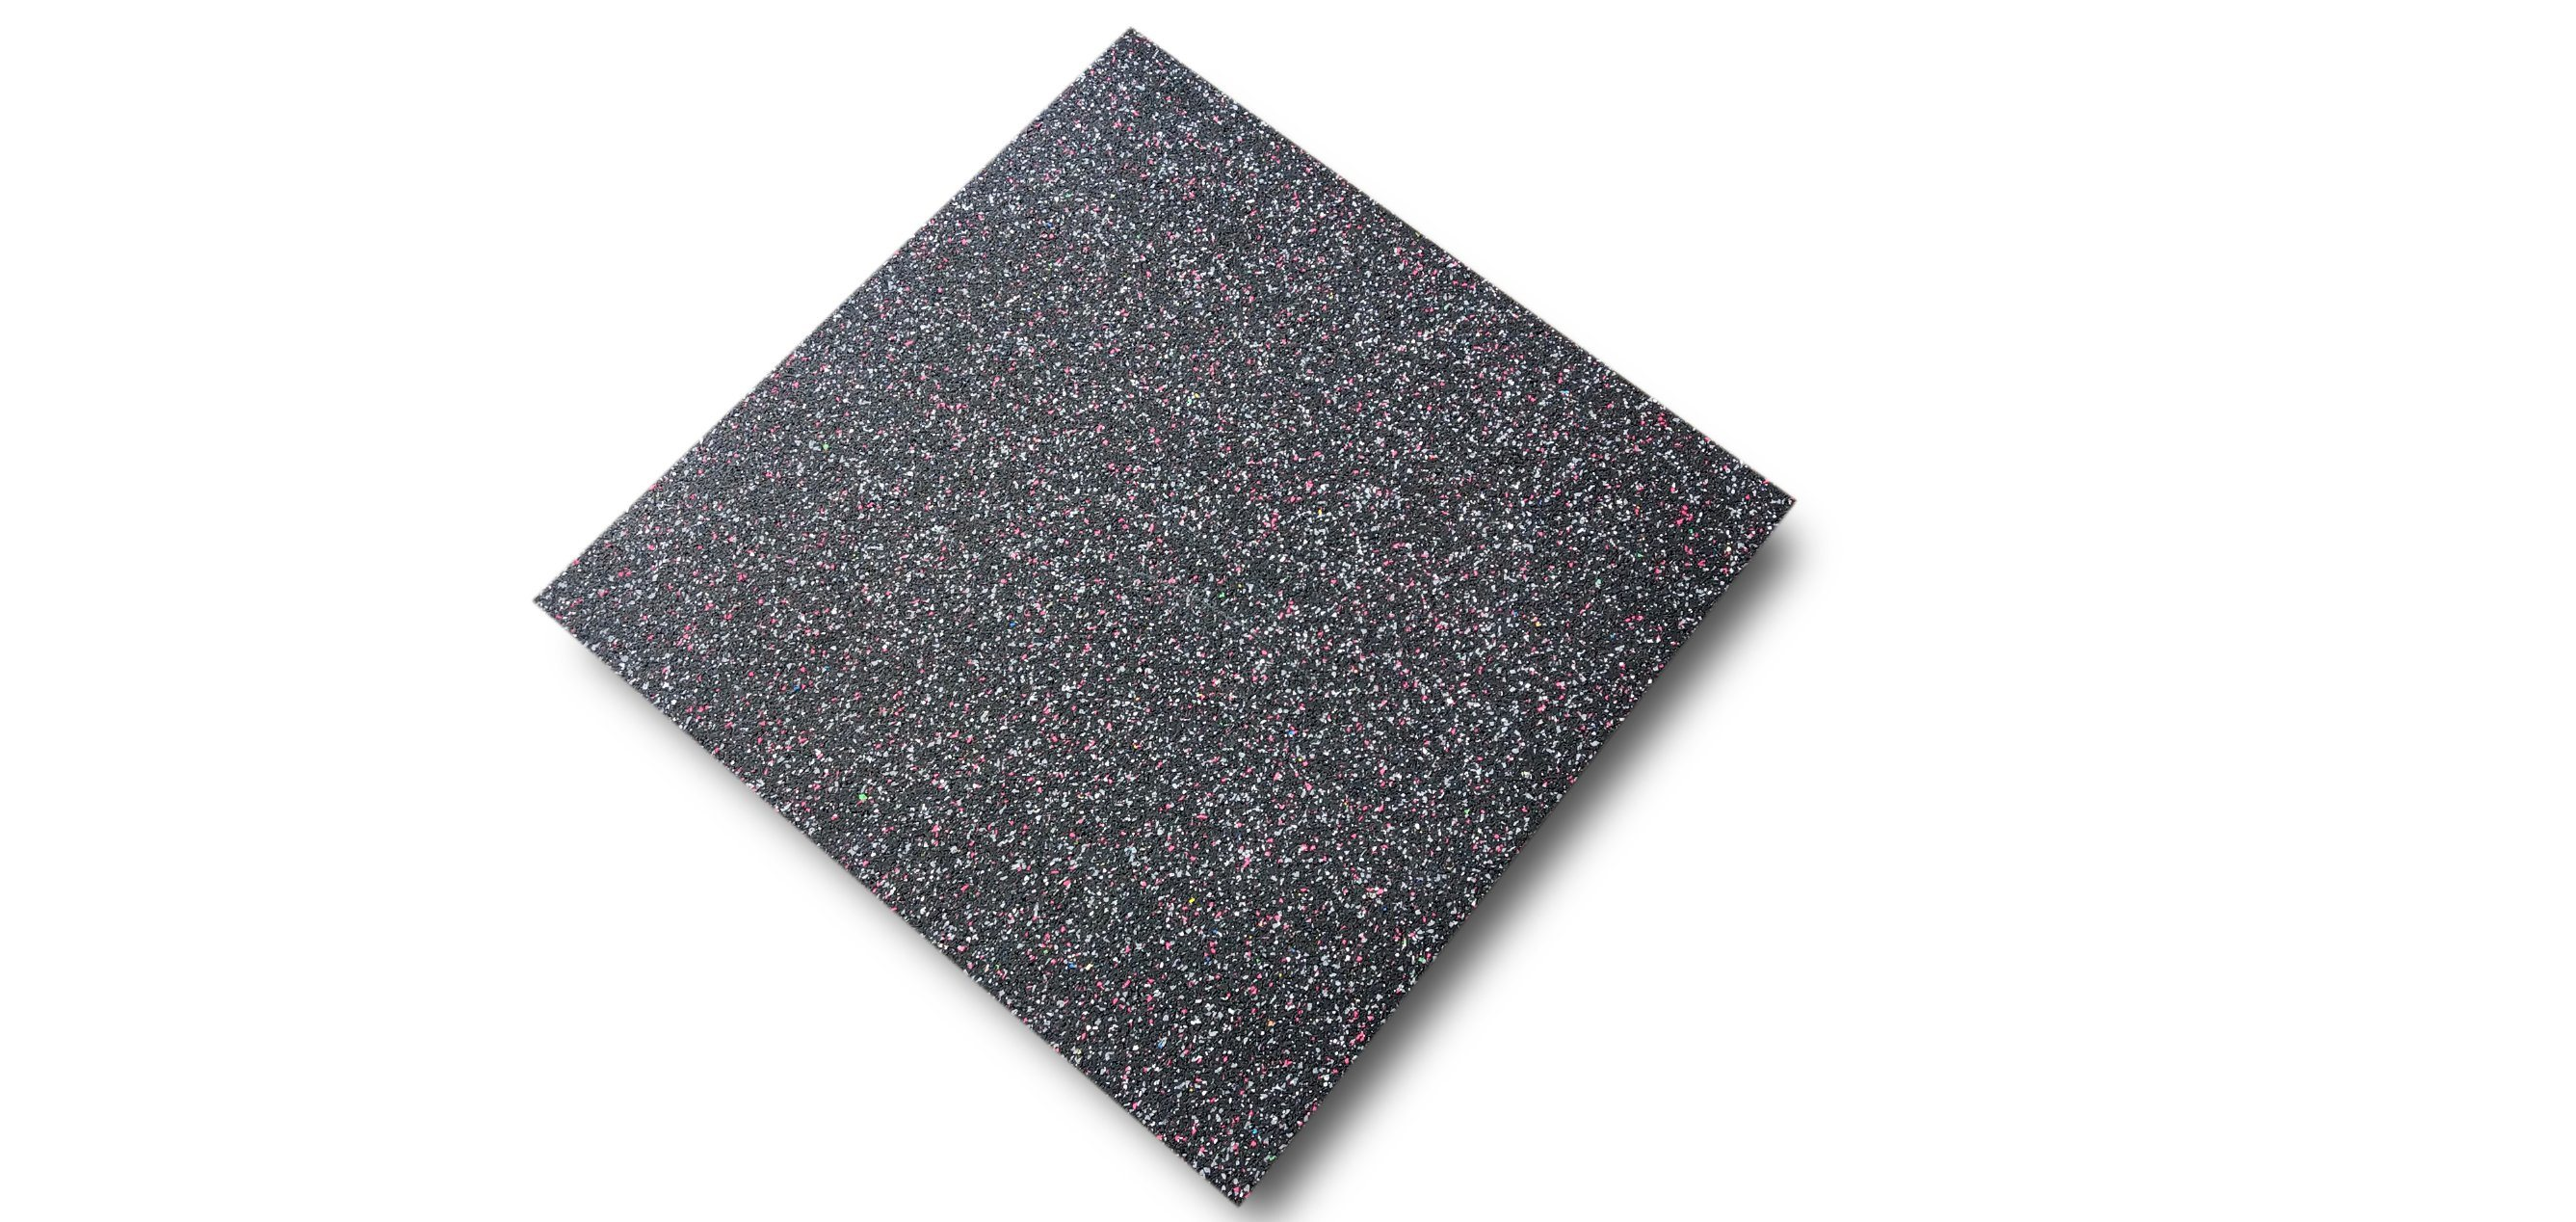 China Customized Anti Vibration Shock Absorber Home Depot Rubber Mat For Running Machine Gym Washing Liance